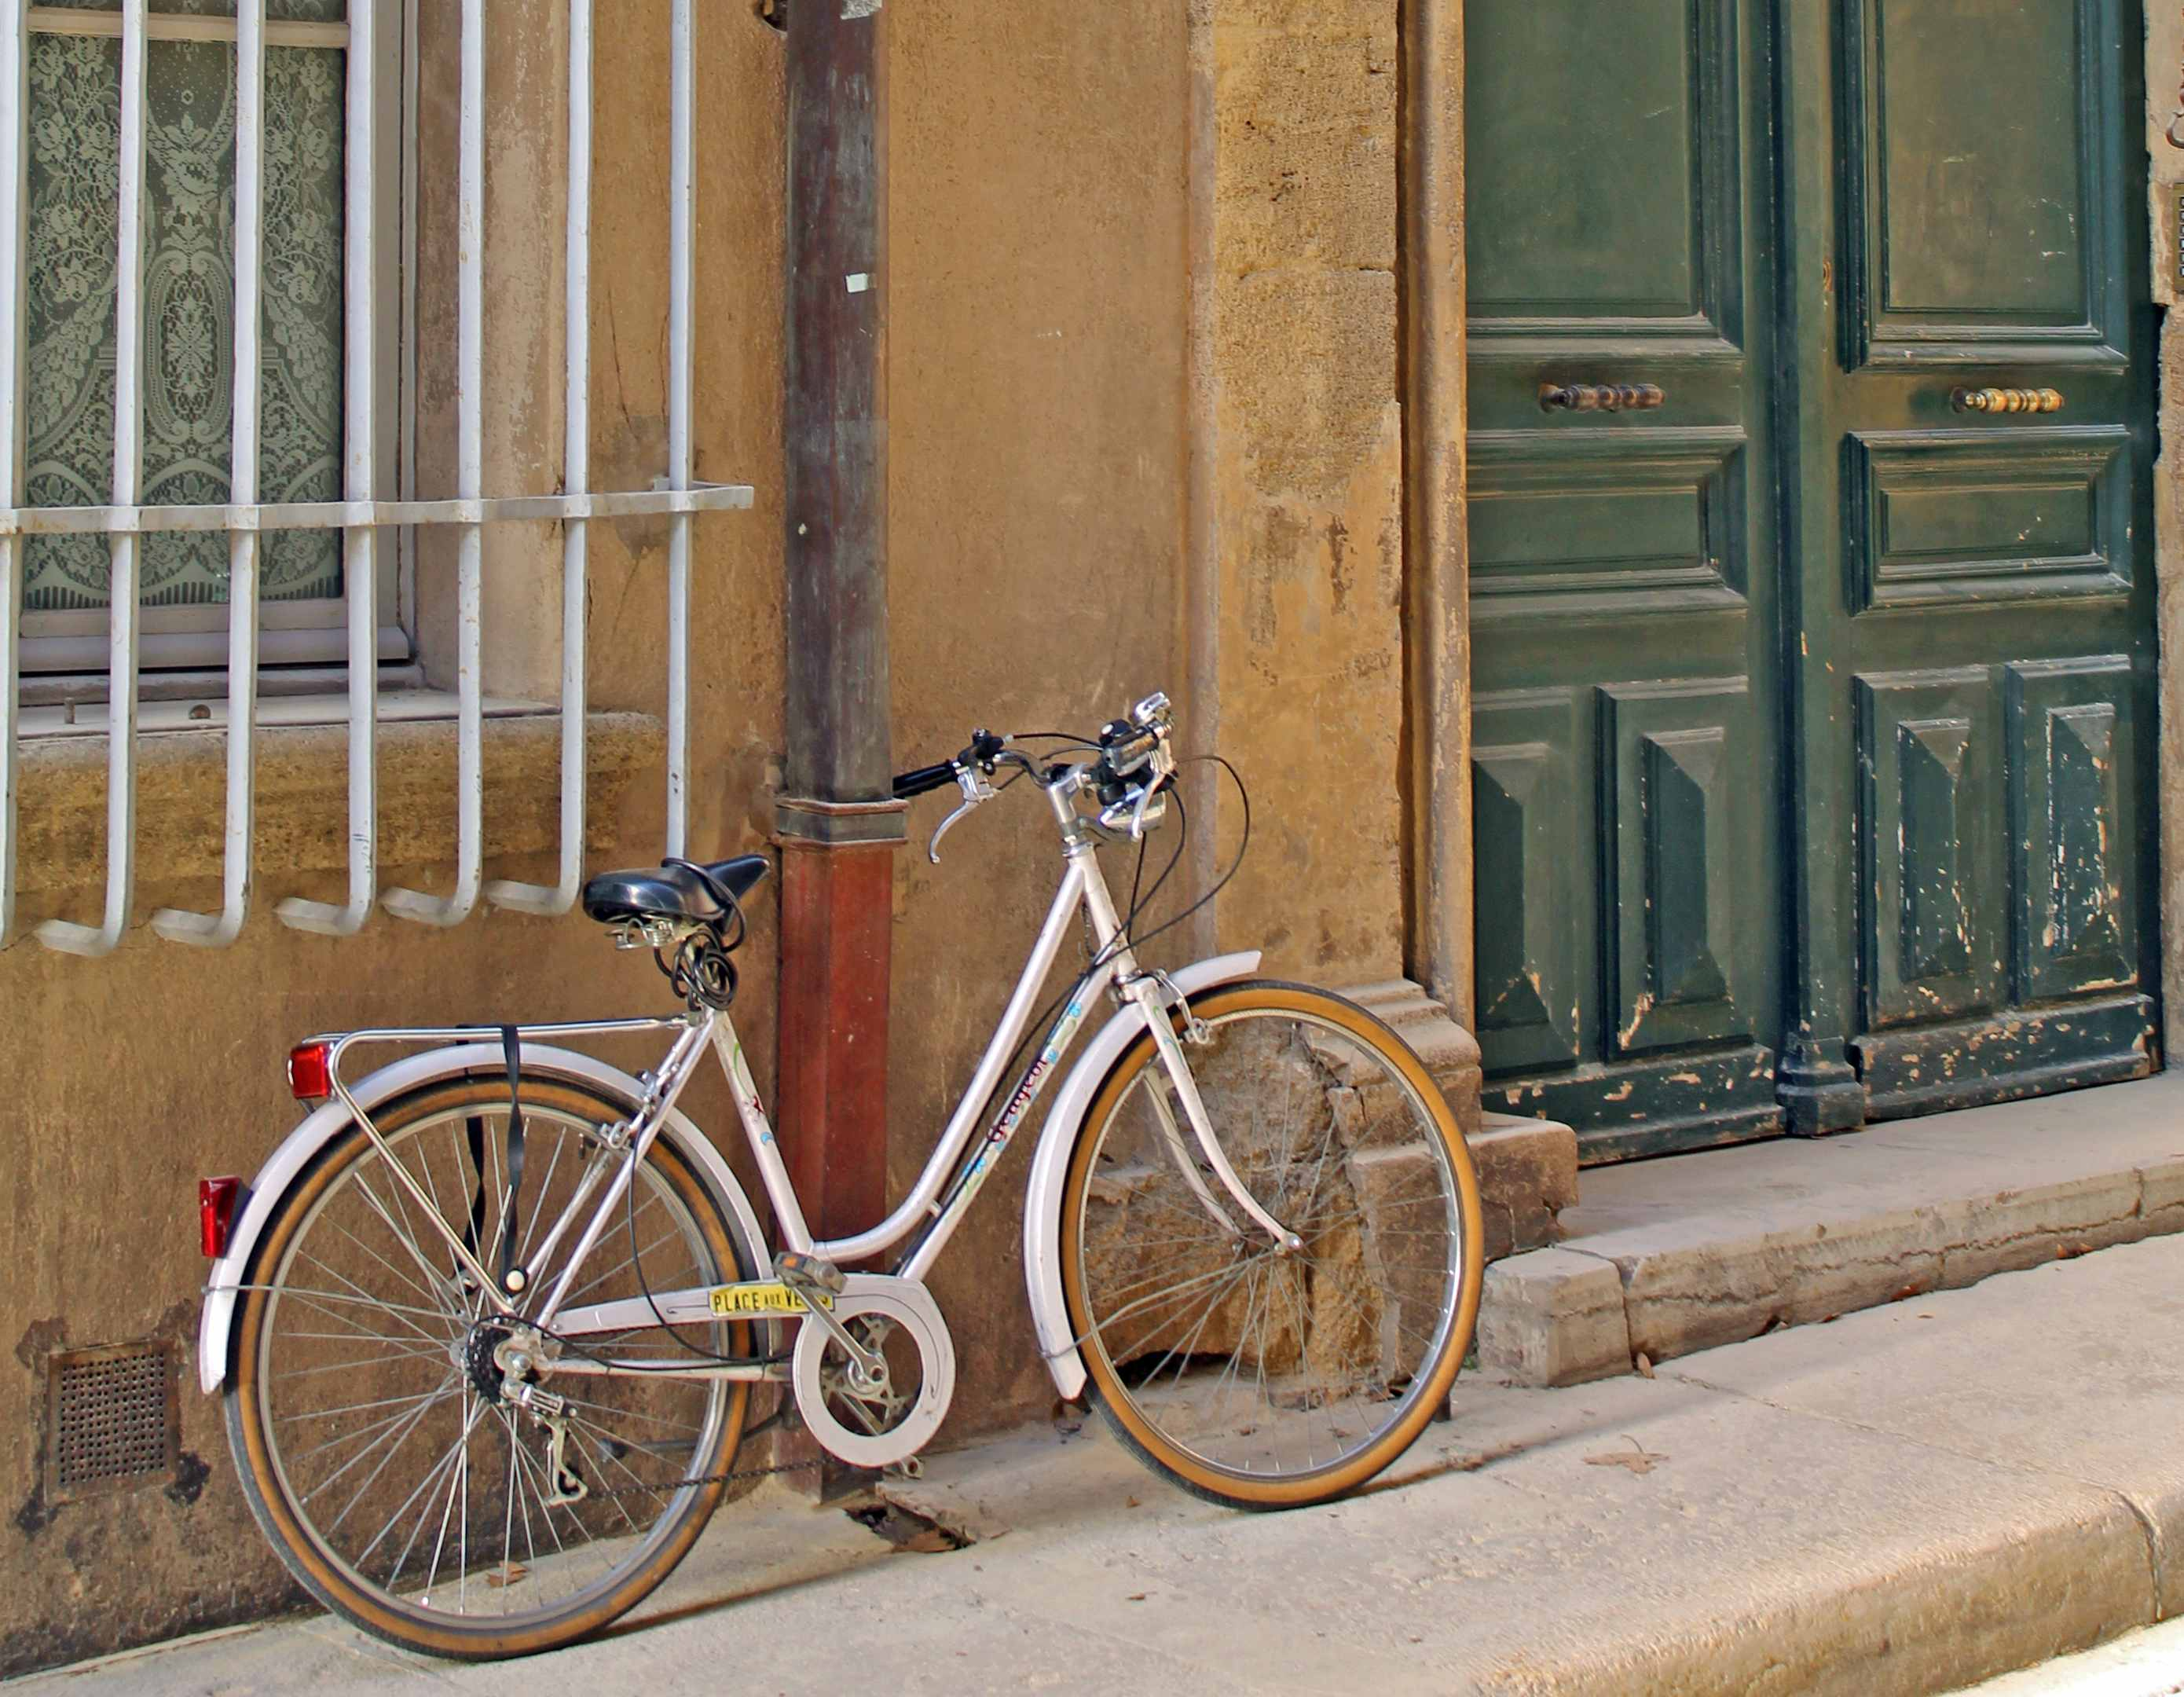 Cycling in Aix-en-Provence - Focal Journey